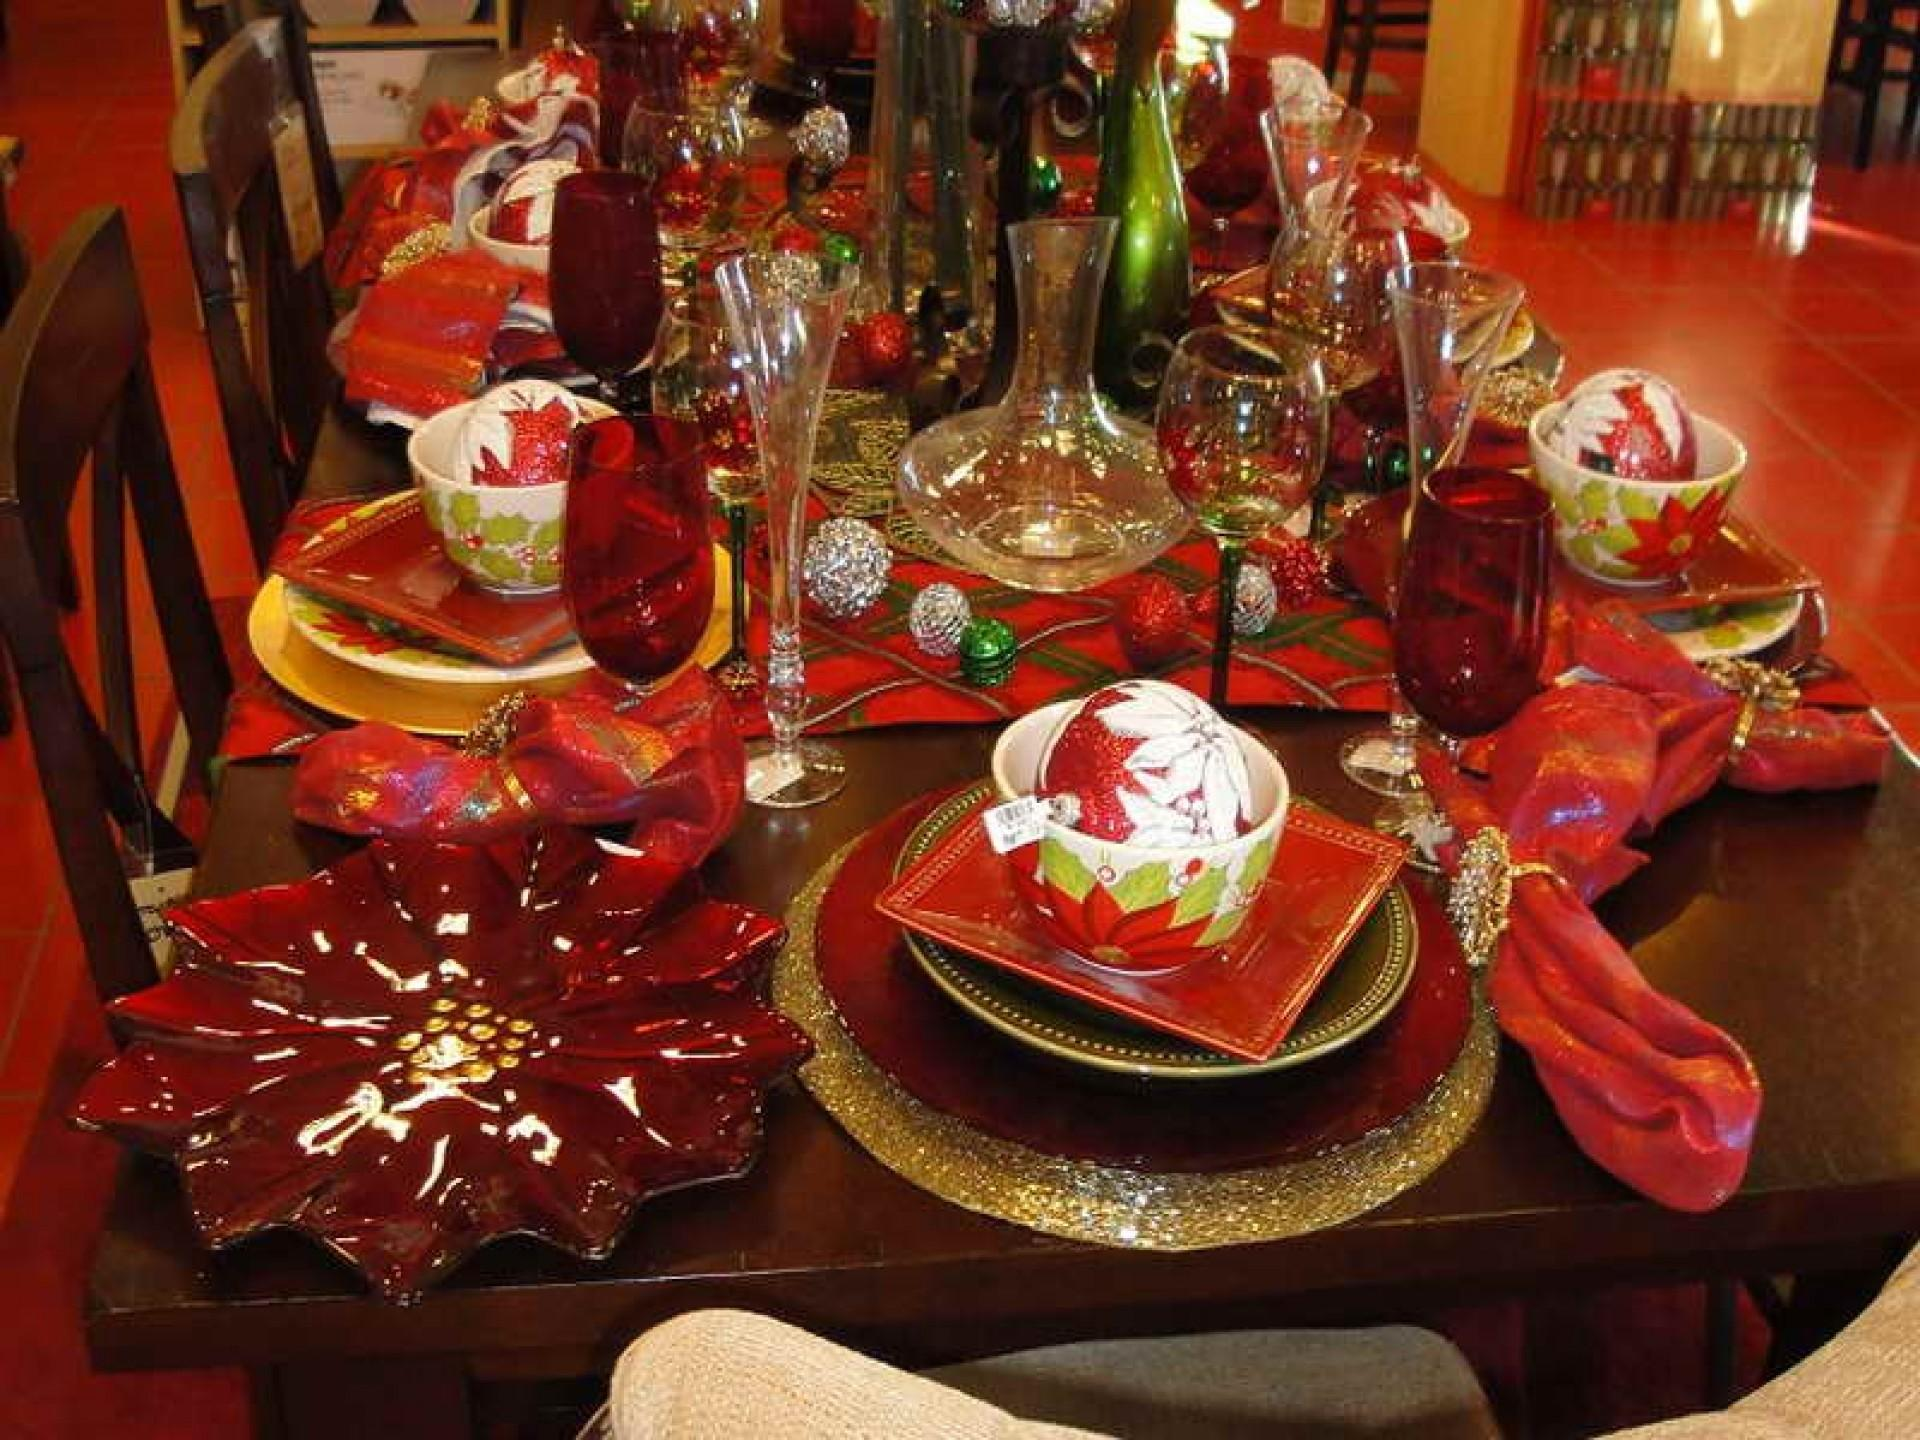 Lovely Christmas Dinner Table Decorations Ideas Red